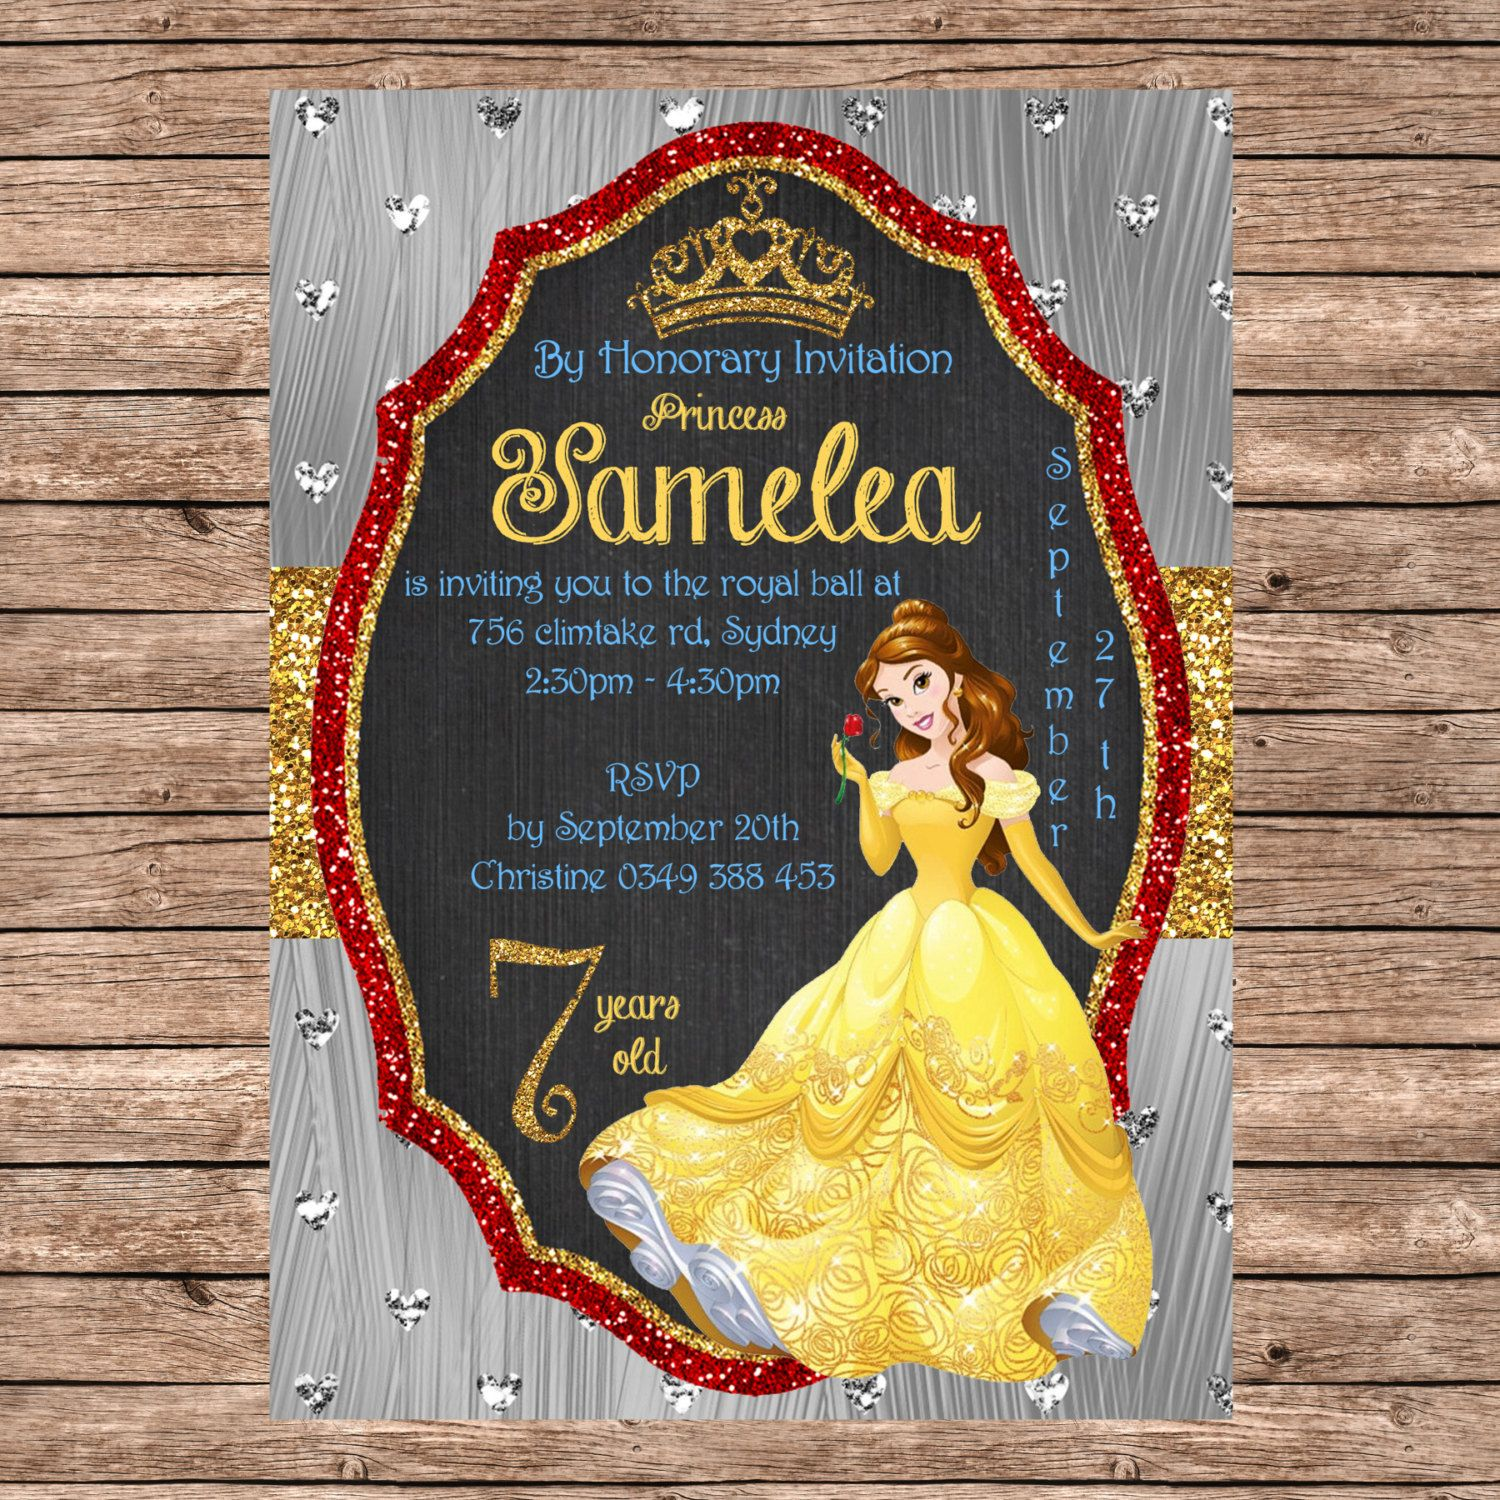 PERSONALIZED Belle, Beauty and The Beast, Disney Princess Invitation  - Instant Digital Download, Birthday Party Supplies by MemoriesbyKristieLee on Etsy